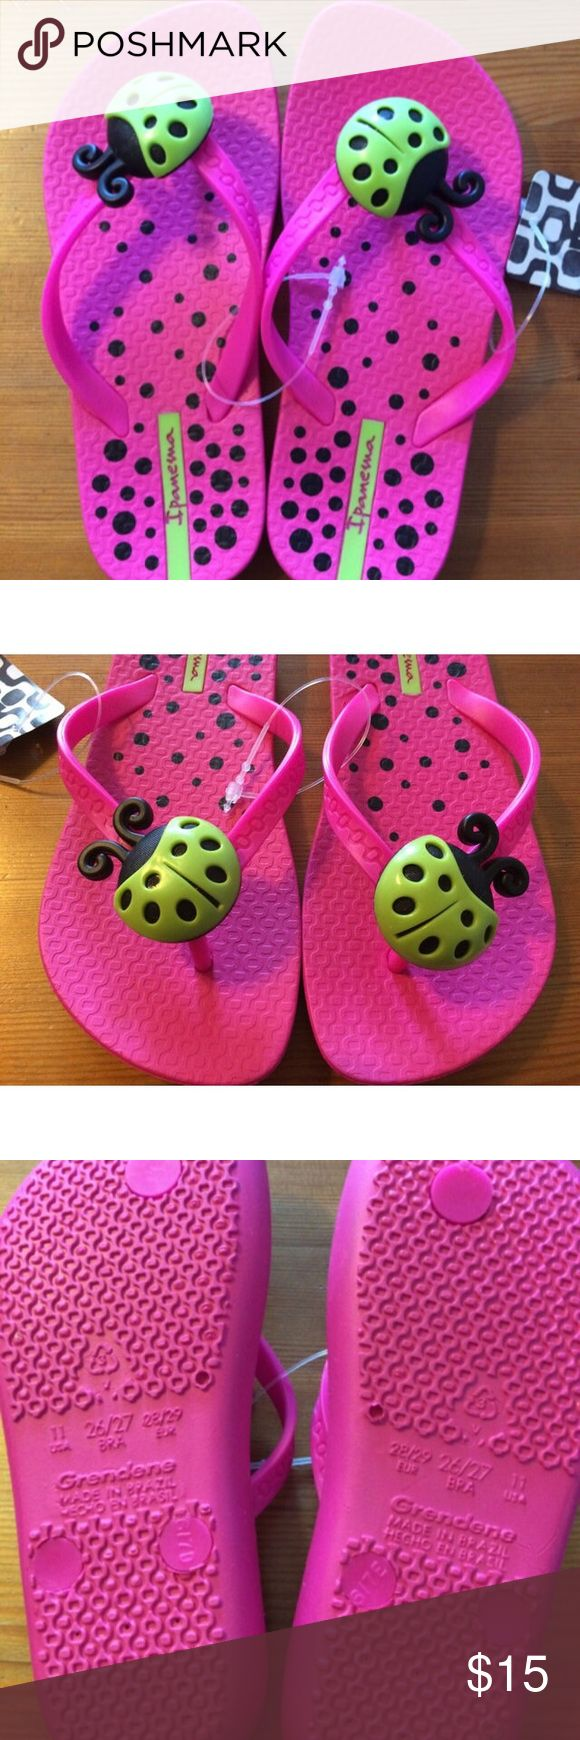 Ladybug flip flops Pink flip flops with bright green ladybugs. Made by grendene which is the same company that makes mini melissas. New with tags but a few marks on soles. Smoke free dog friendly home. Shoes Sandals & Flip Flops